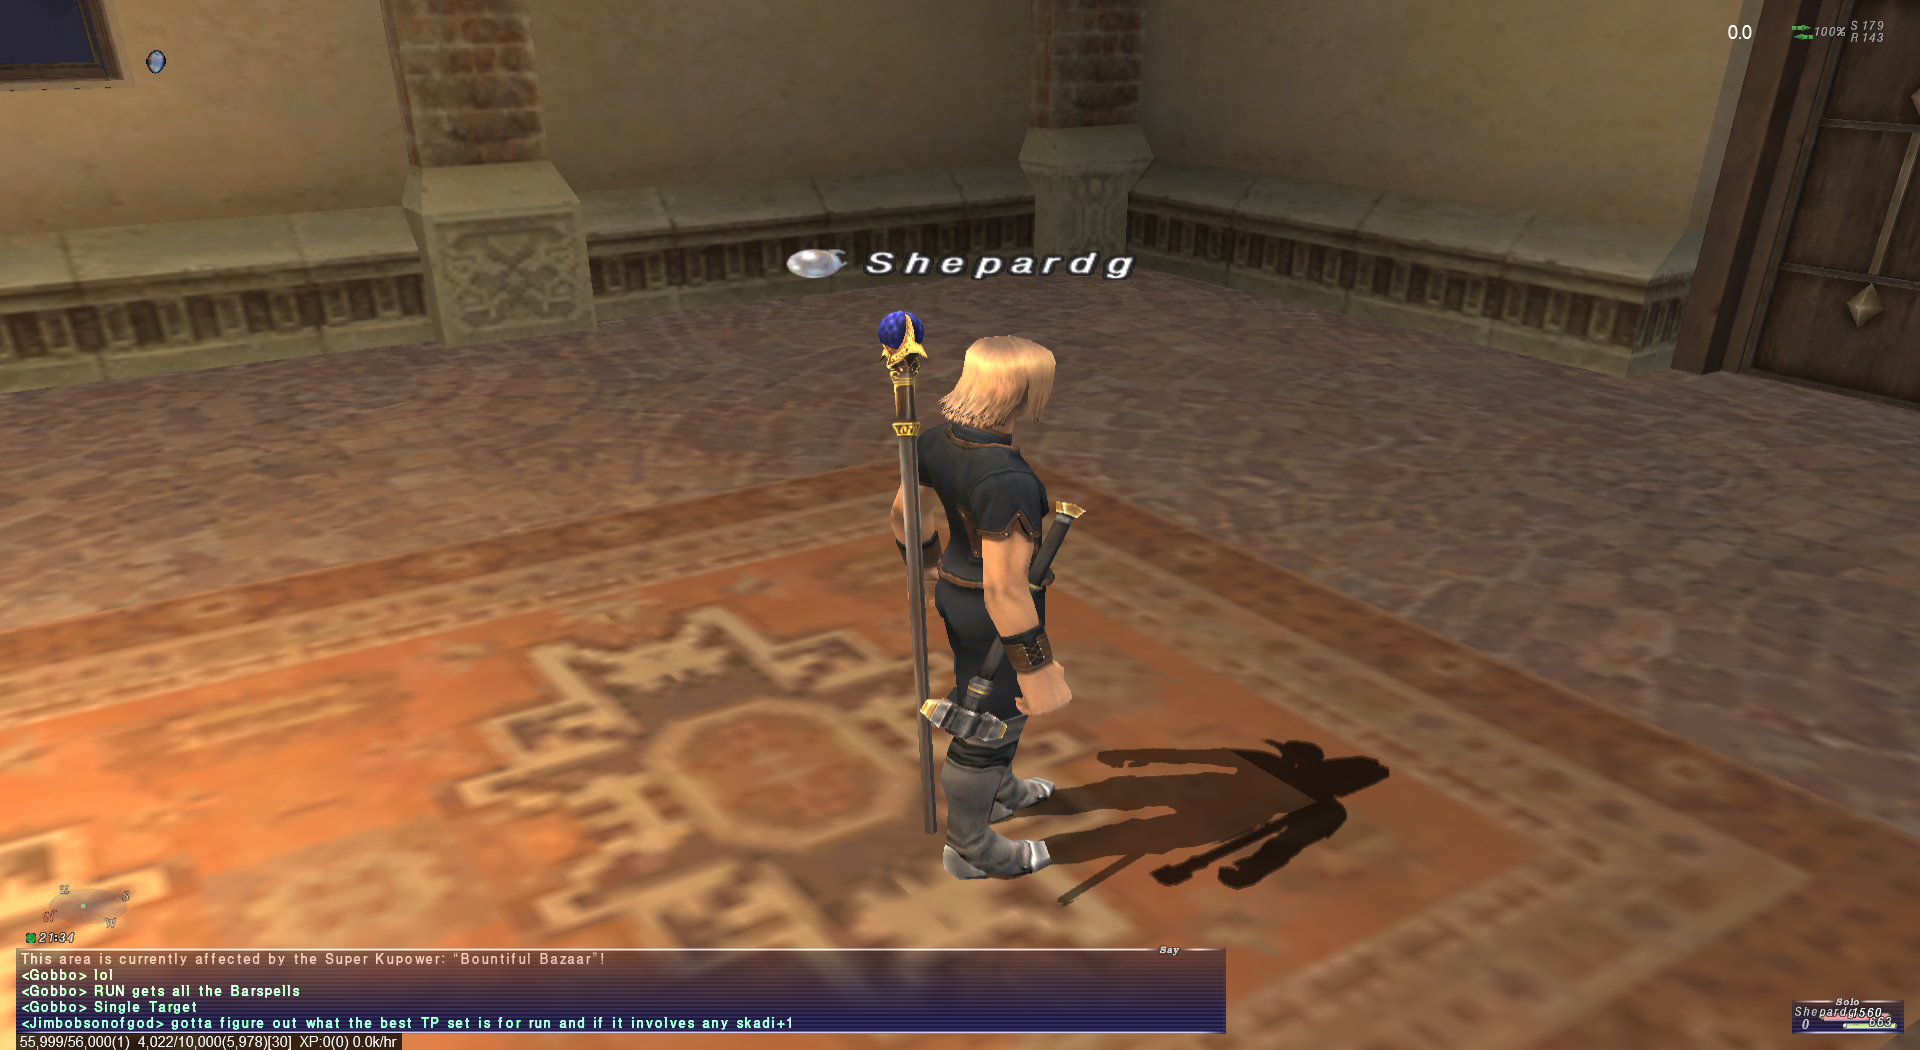 shepardg ffxi reive this please post someone your fucking bayld fucked fuckin forums just lose guess questions here clipper 3272013 borked stuff crash